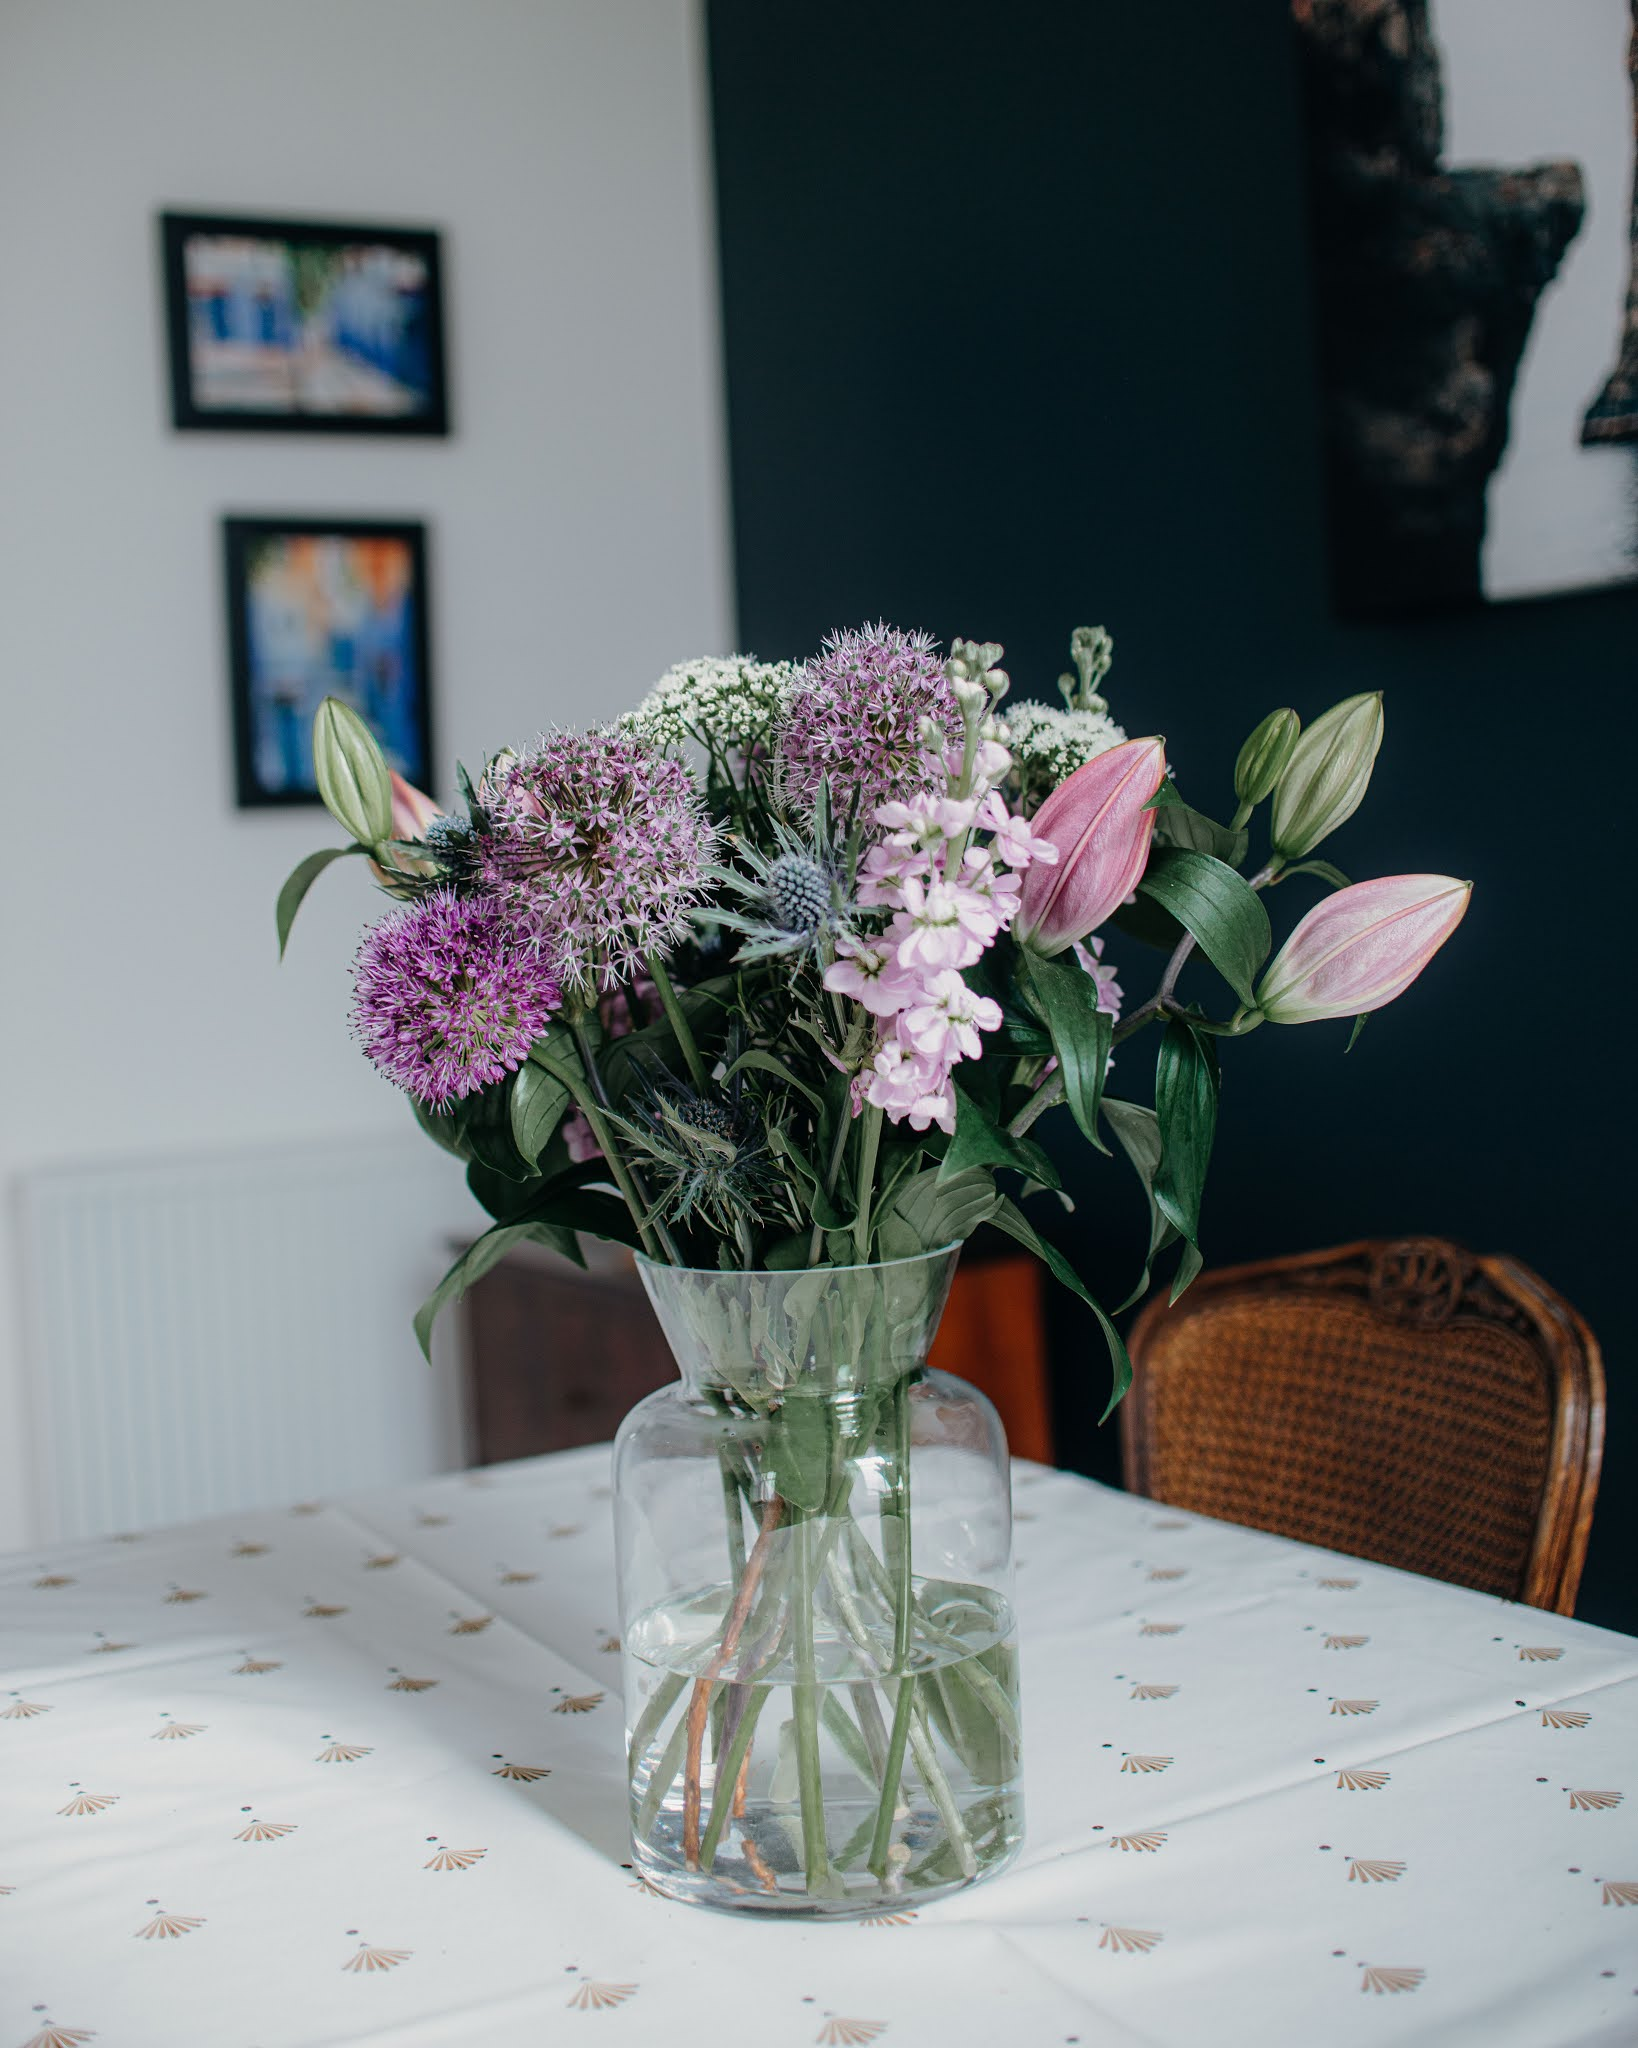 Freddie's Flowers - Paddington to Penzance Before and After liquid grain